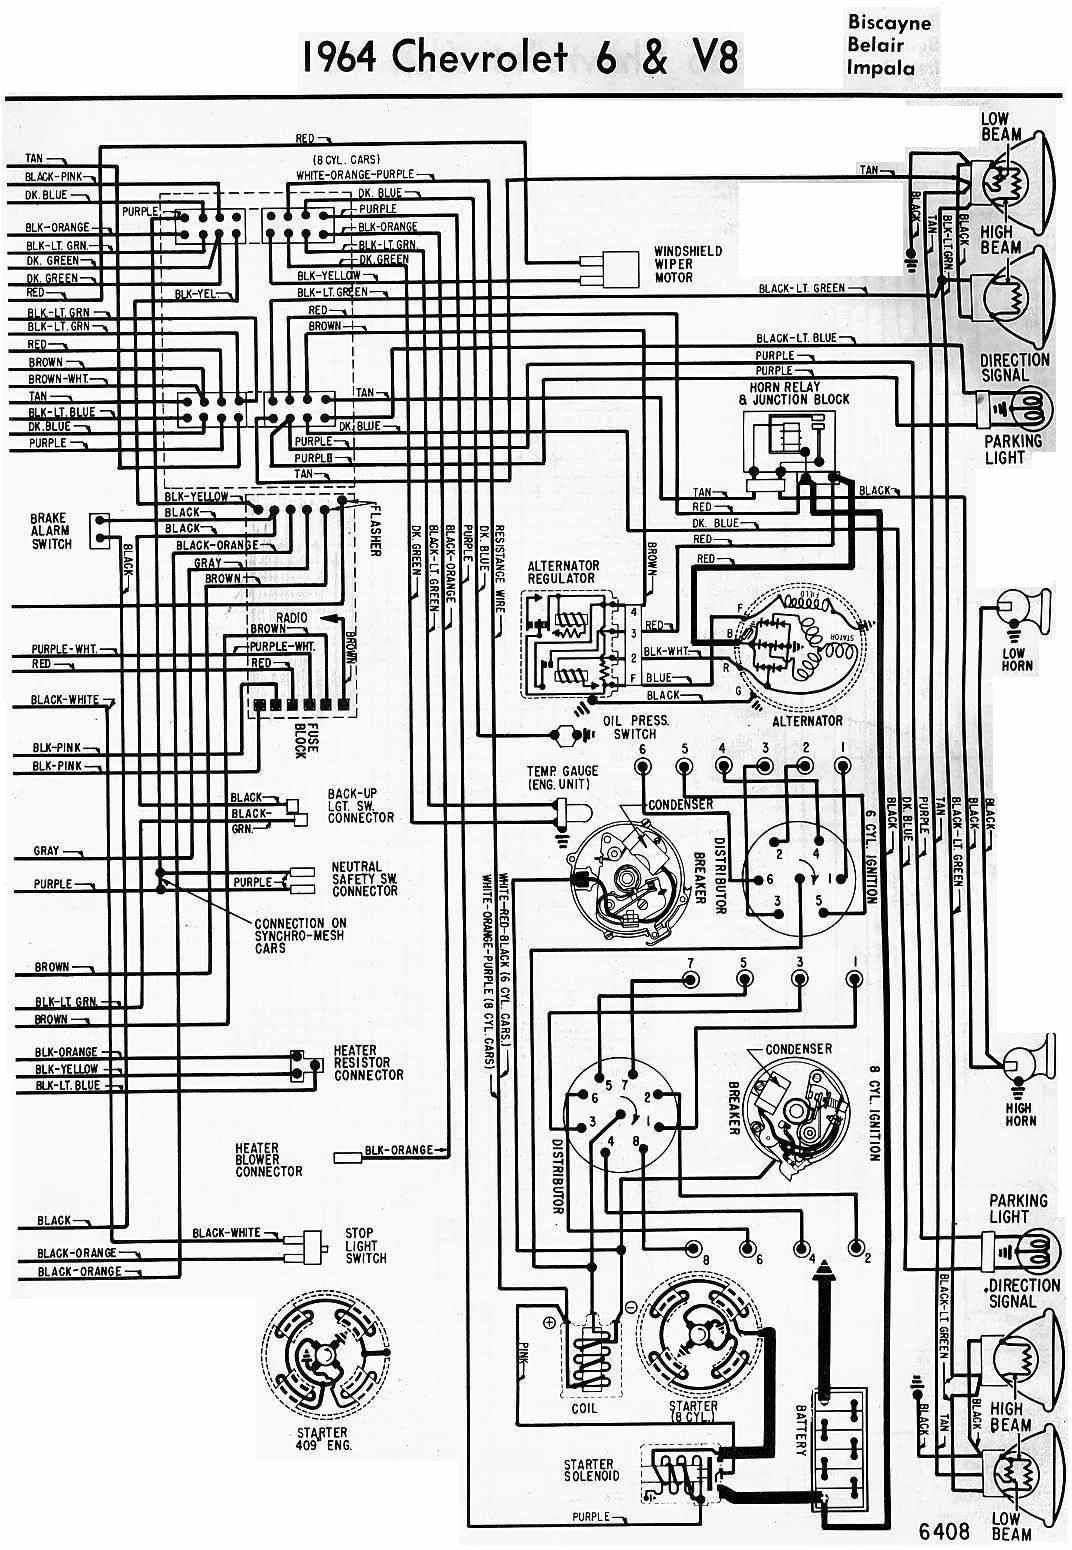 hight resolution of 1963 chevy impala ignition wiring for wiring diagram 1963 impala electrical diagram